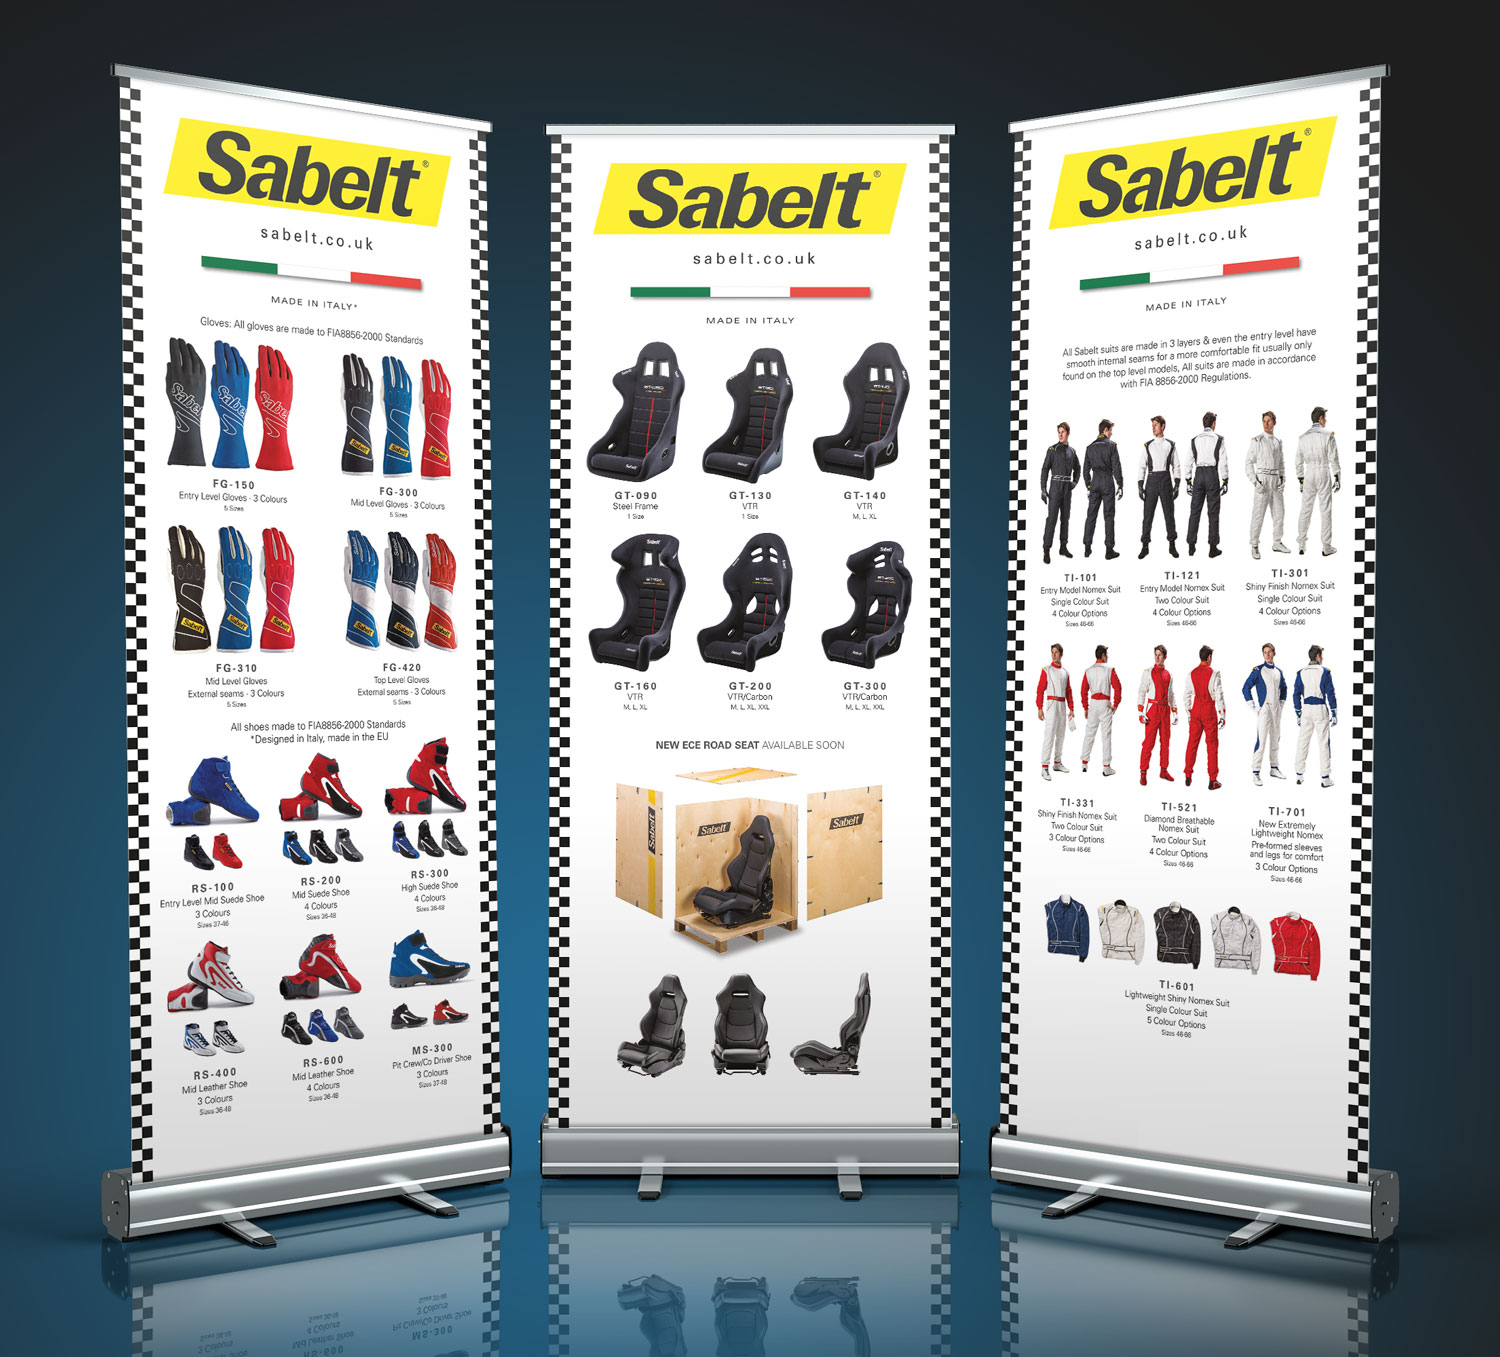 Exhibition design - Sabelt